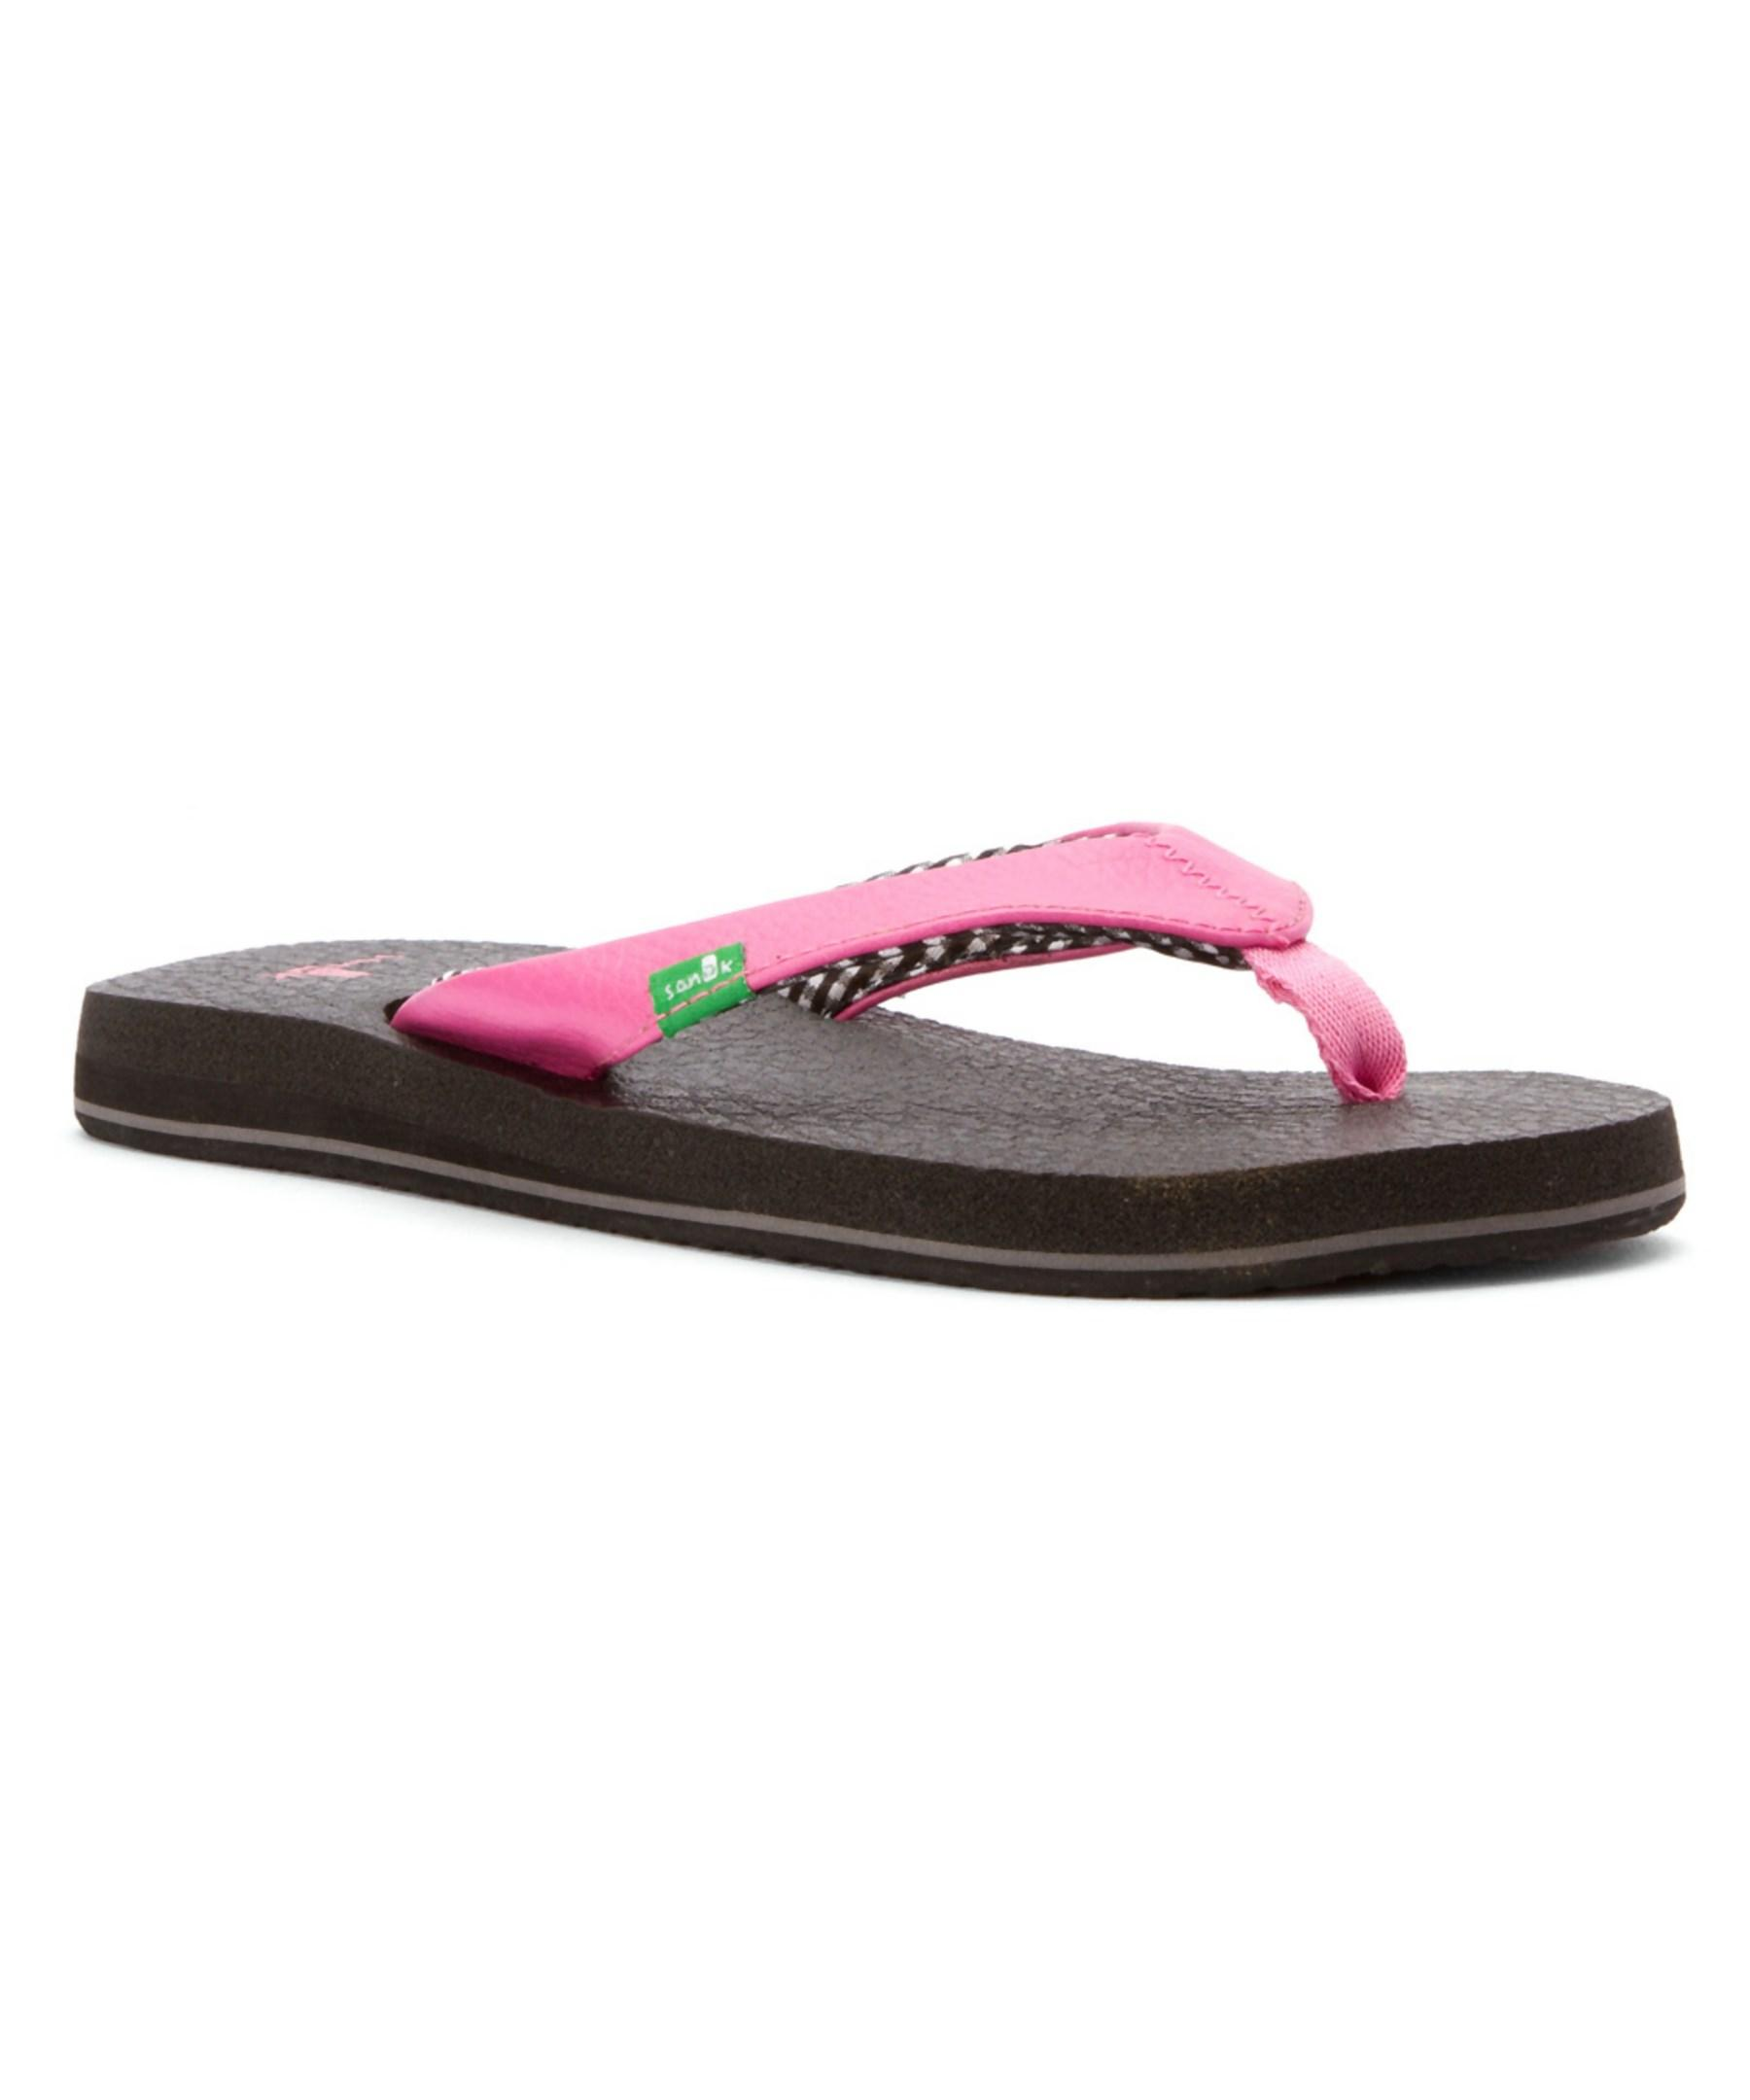 with sandals shoes flop womens product padding riverberry mat clothing yoga sanuk mats tibs jewelry flip premium